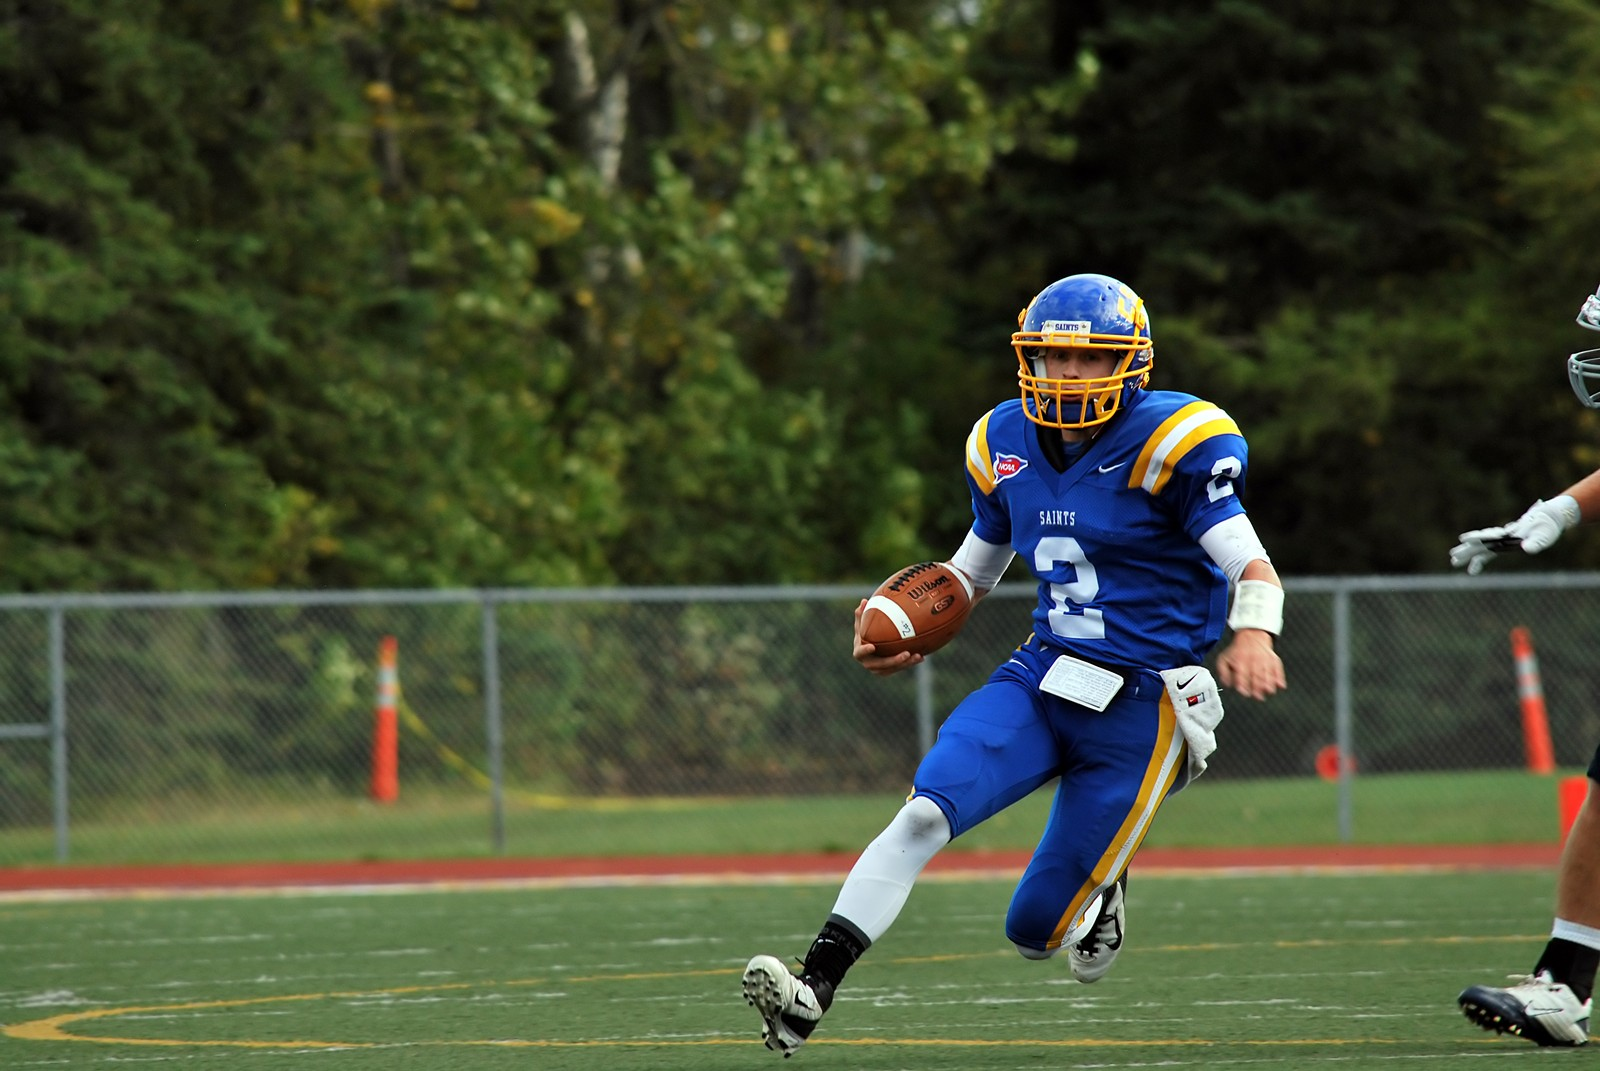 Tyler Harper - Football - The College of St. Scholastica Athletics 101ab108a